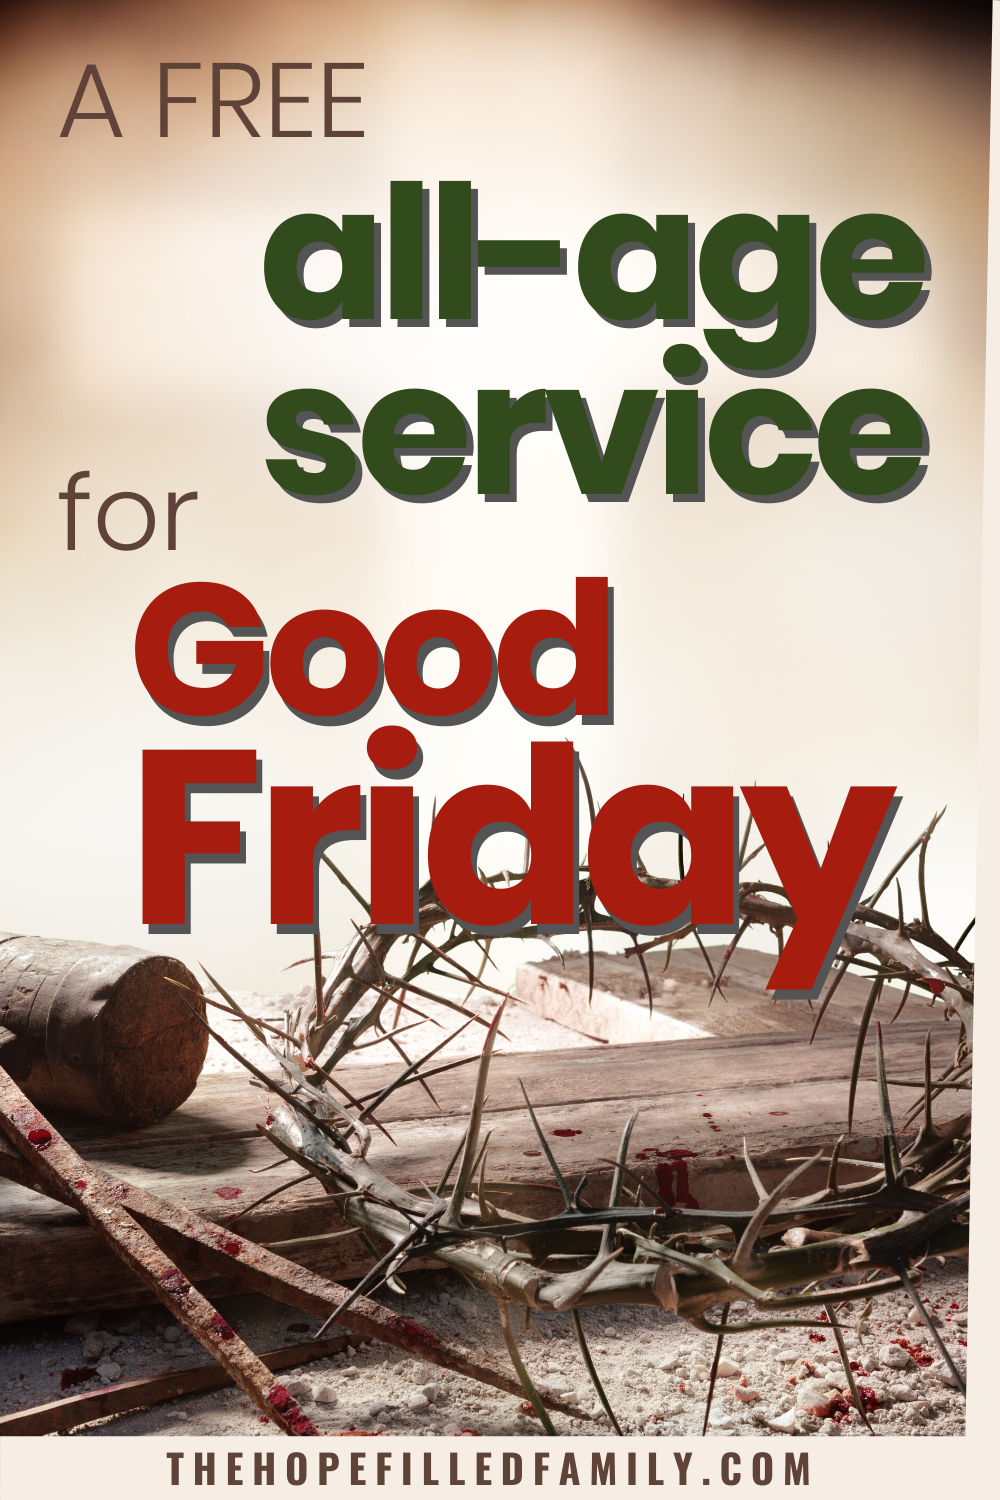 A free service plan for an all-age Good Friday service.